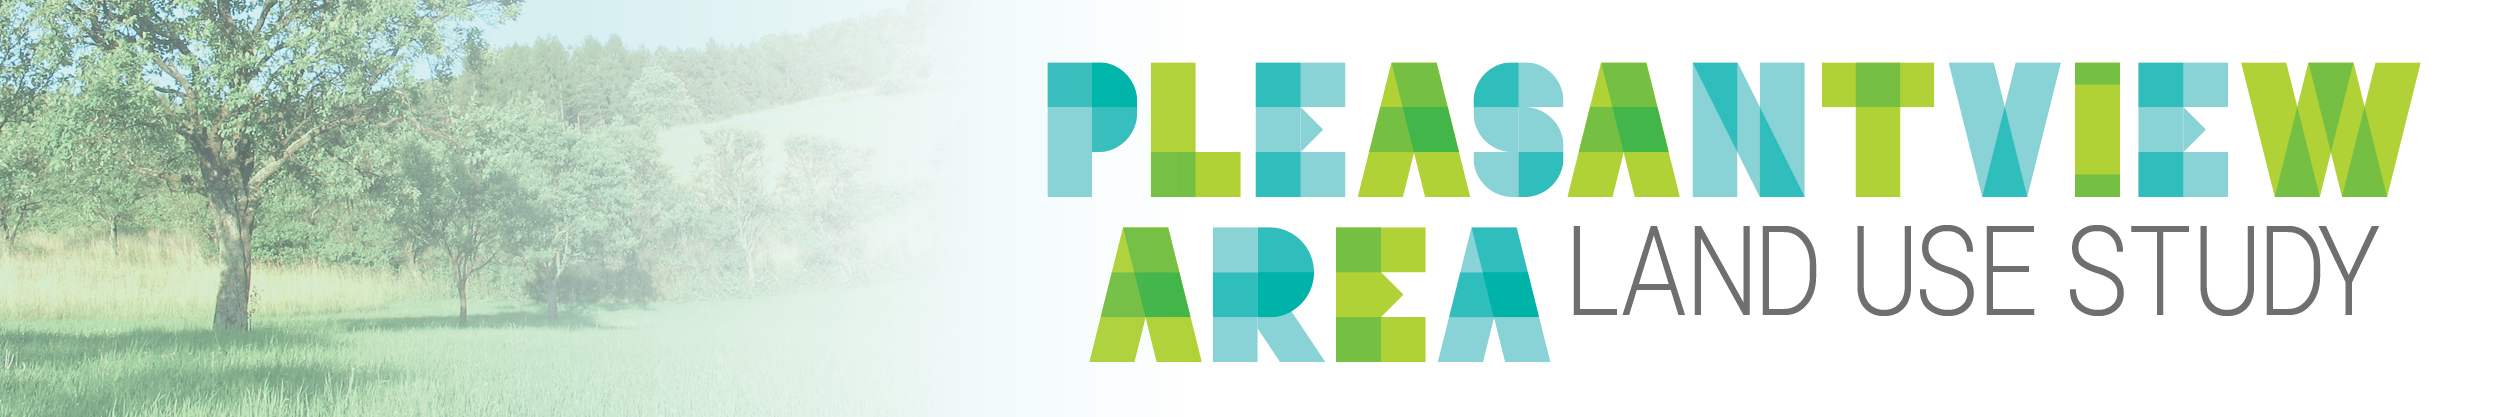 Decorative banner for Pleasantview Area Land Use Study